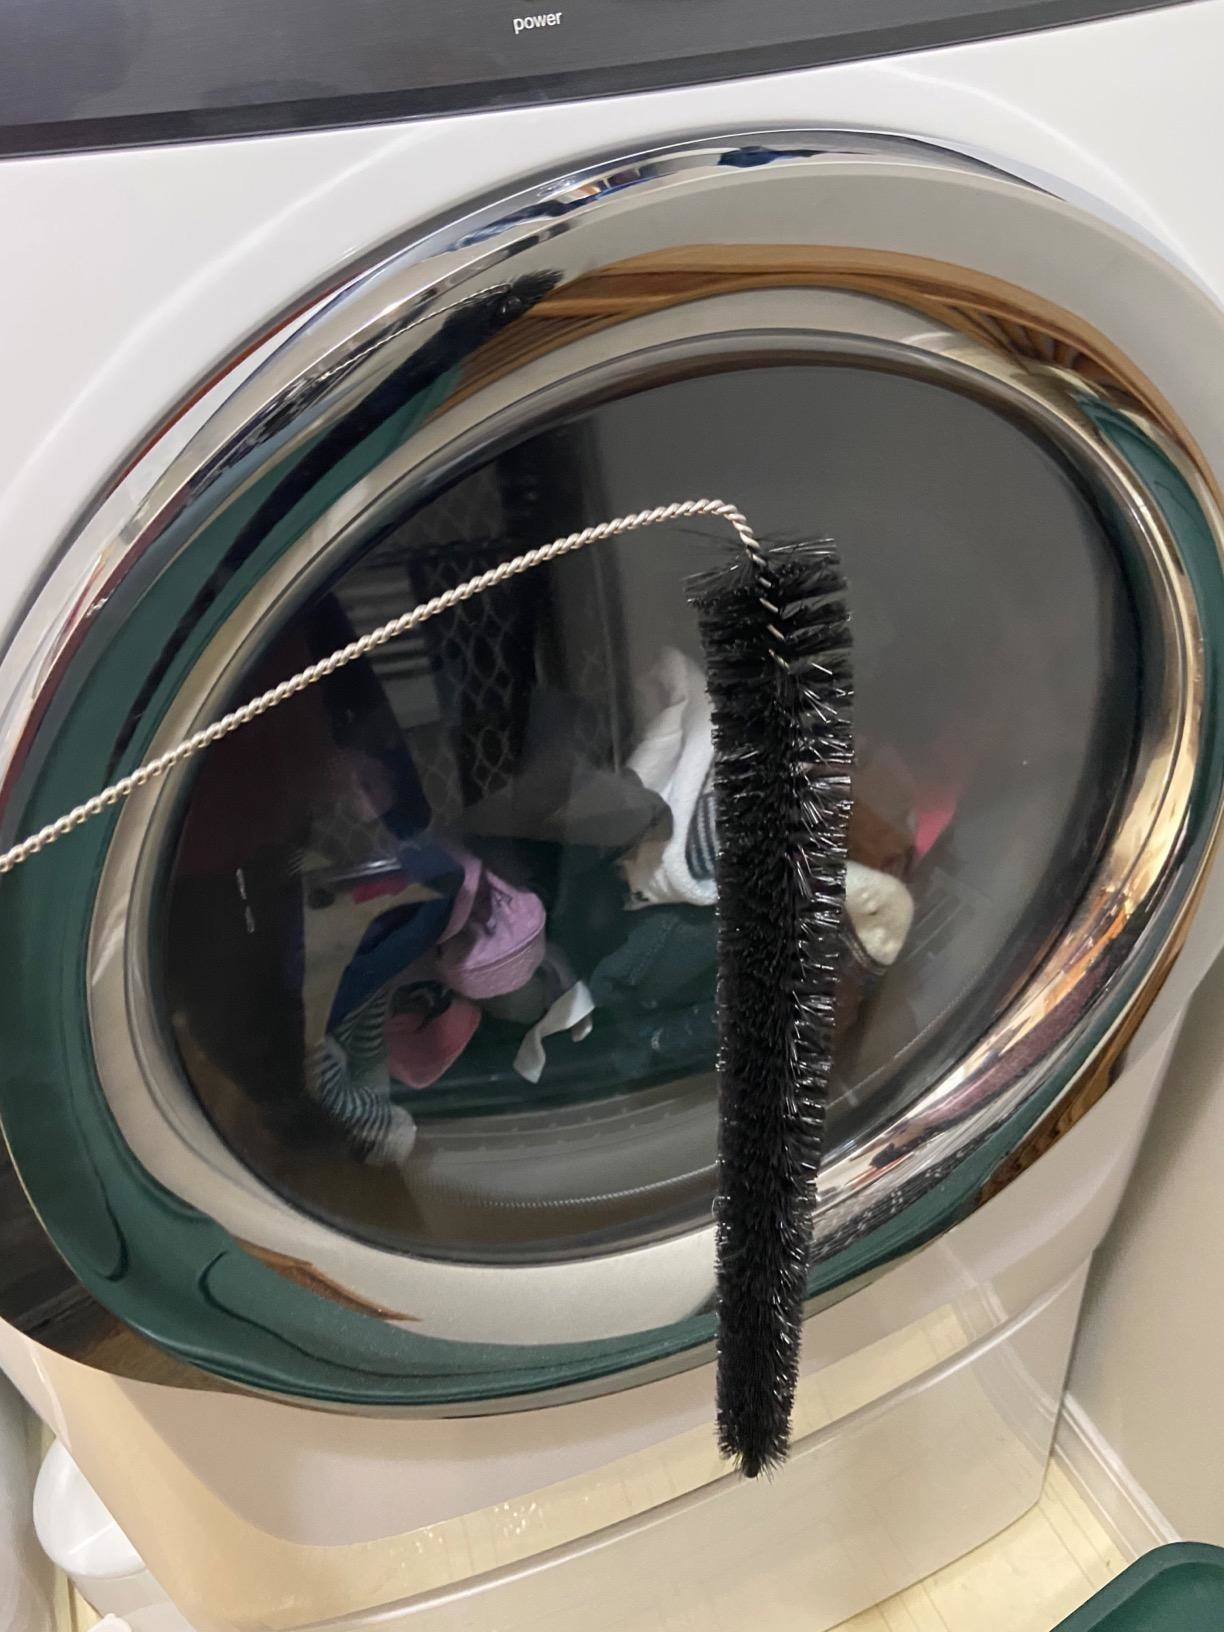 A reviewer holding the curved dryer brush